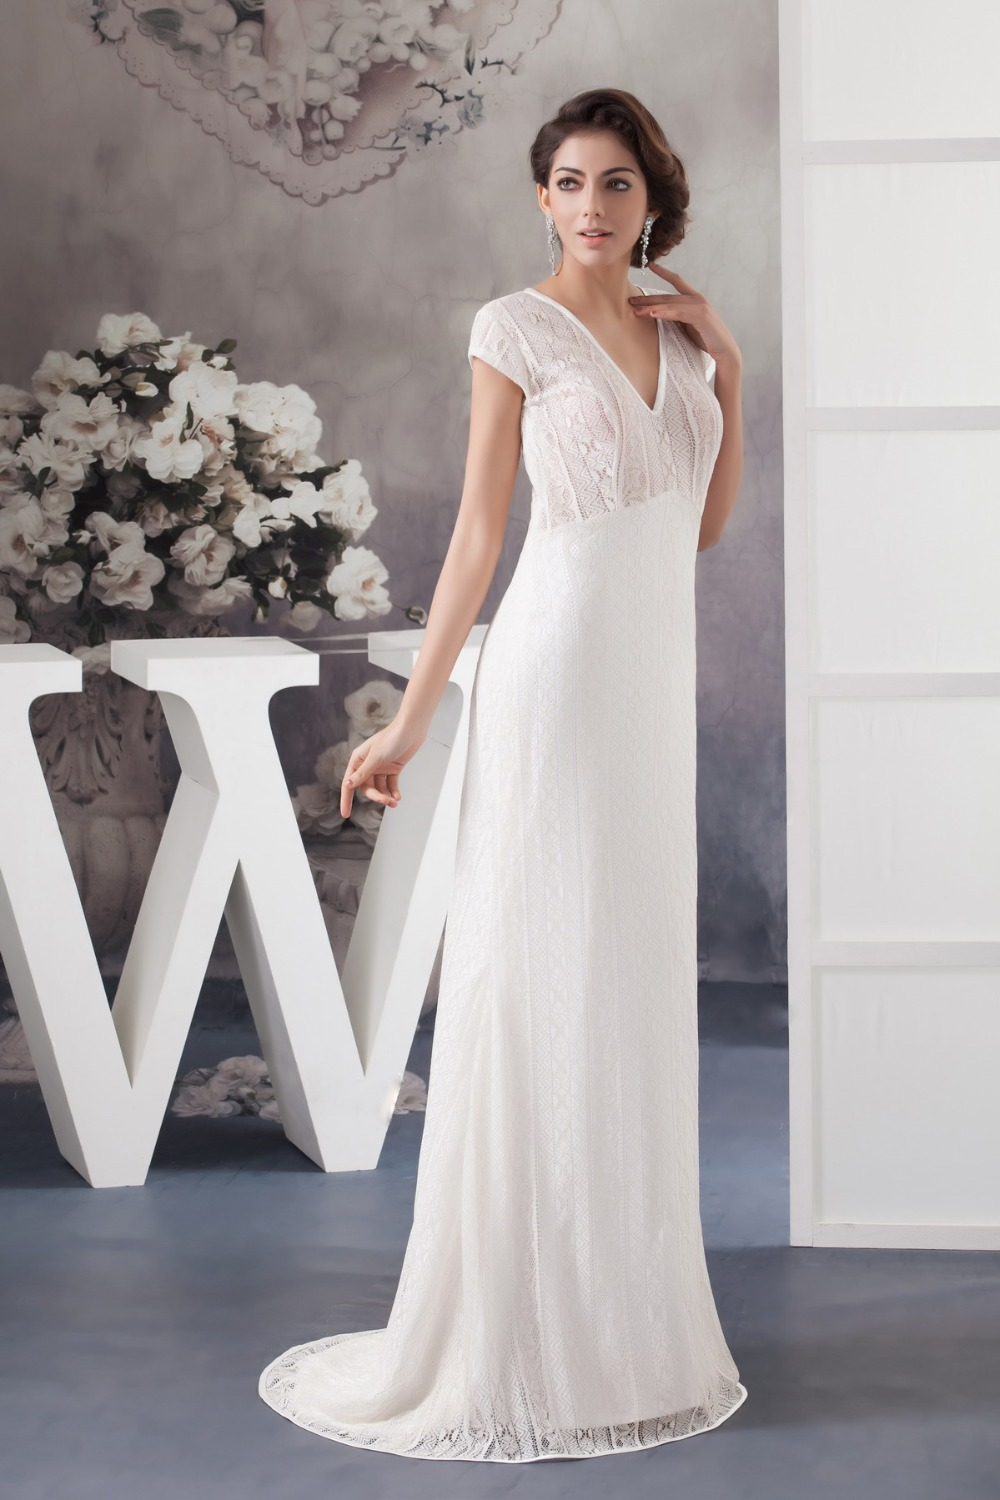 Wedding dresses for older brides cocktail dresses 2016 for Wedding dresses for plus size mature brides